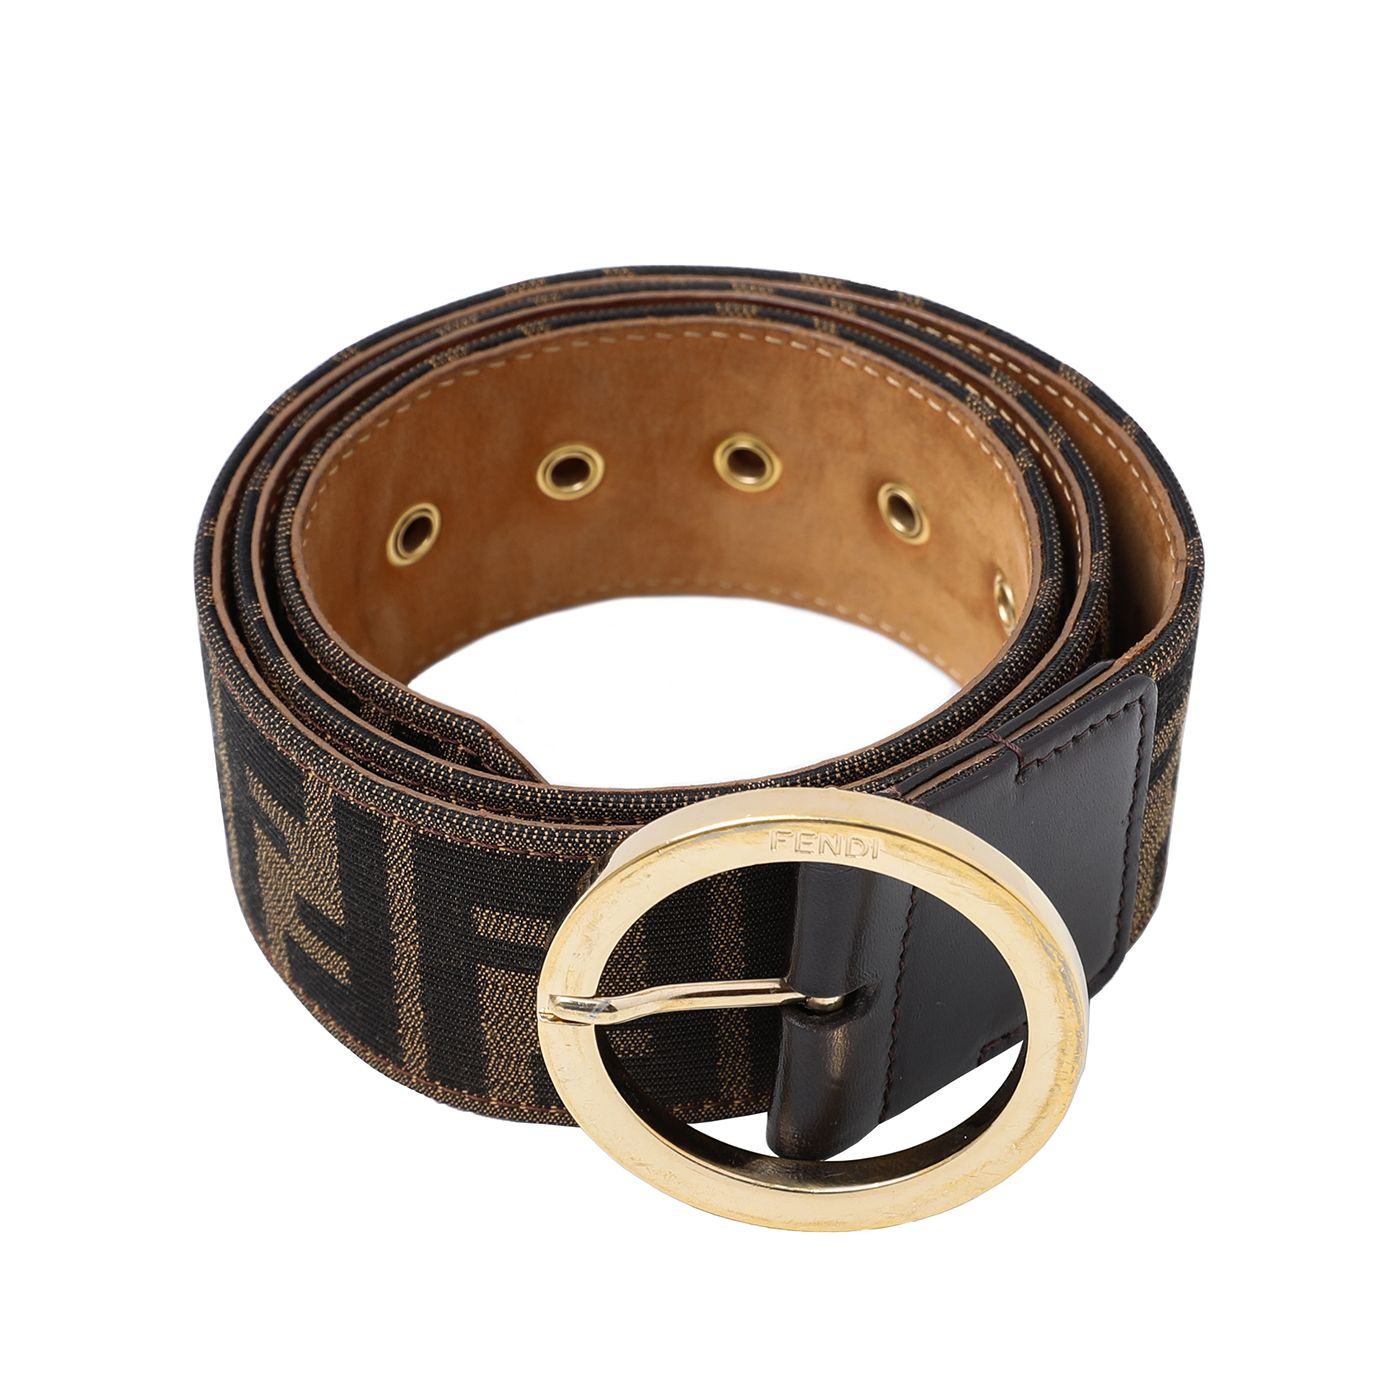 Fendi Brown Round Buckle Zucca Belt 85/34